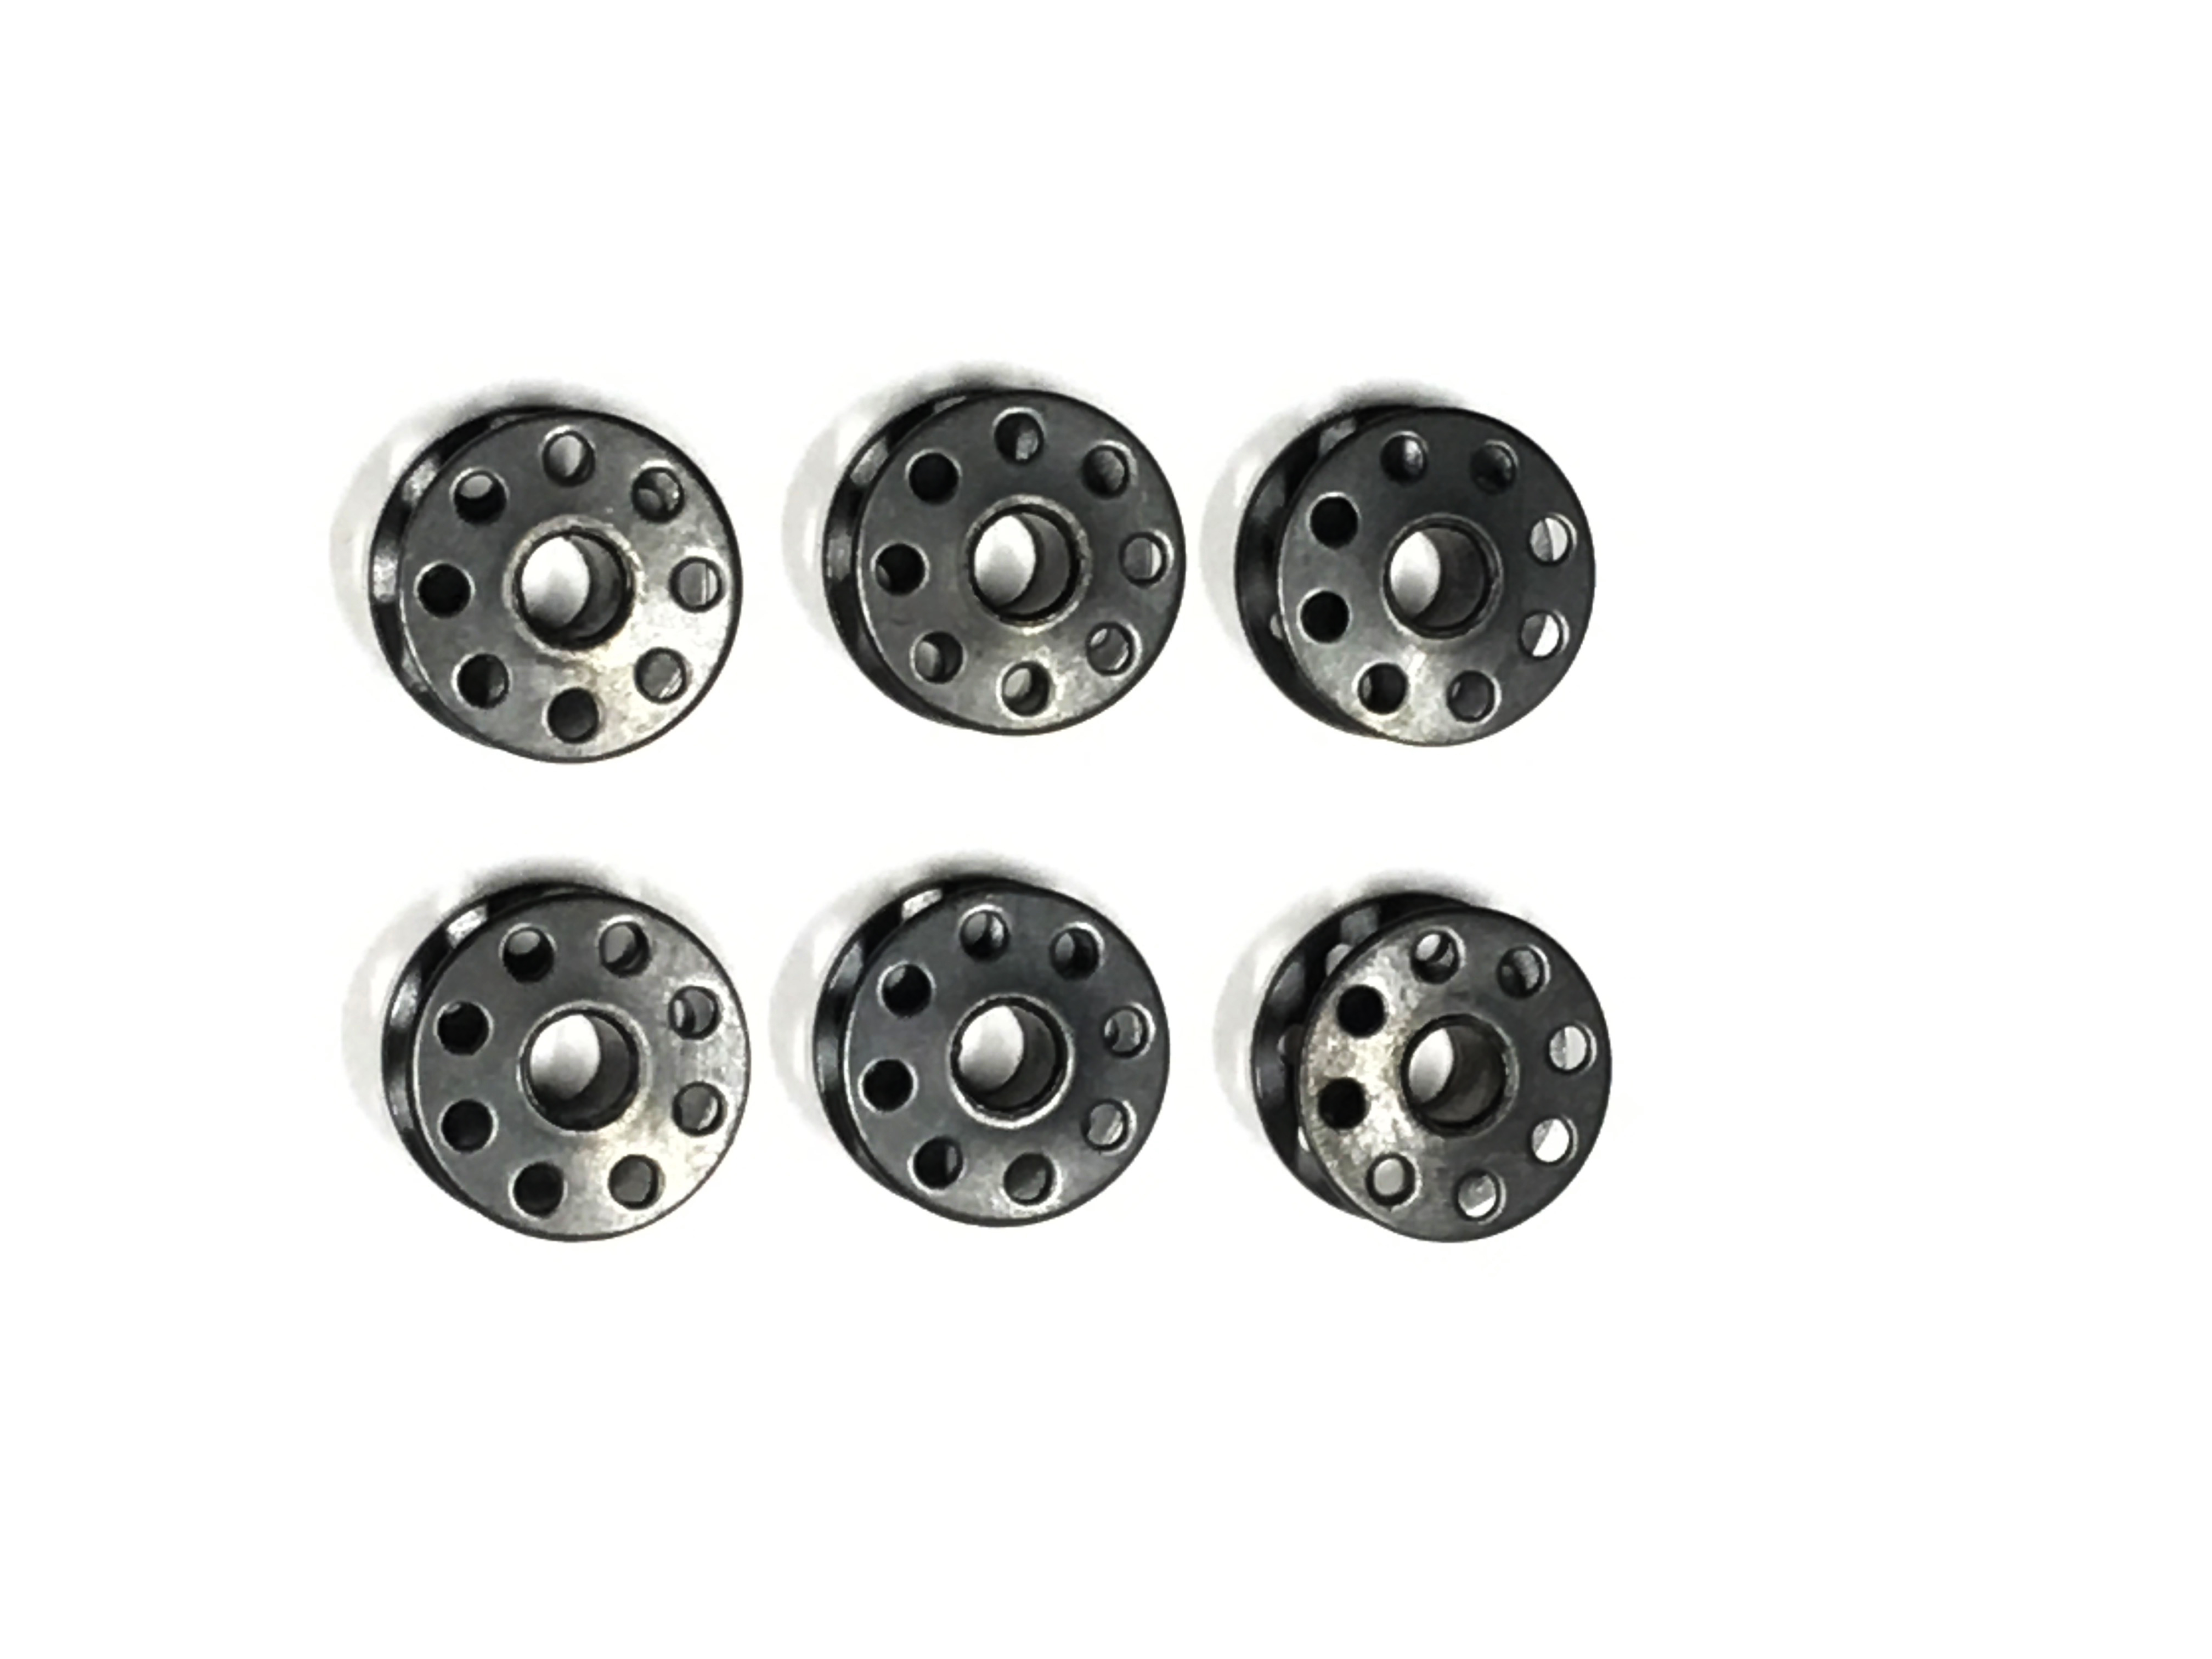 Pack of 6 bobbins for Juki